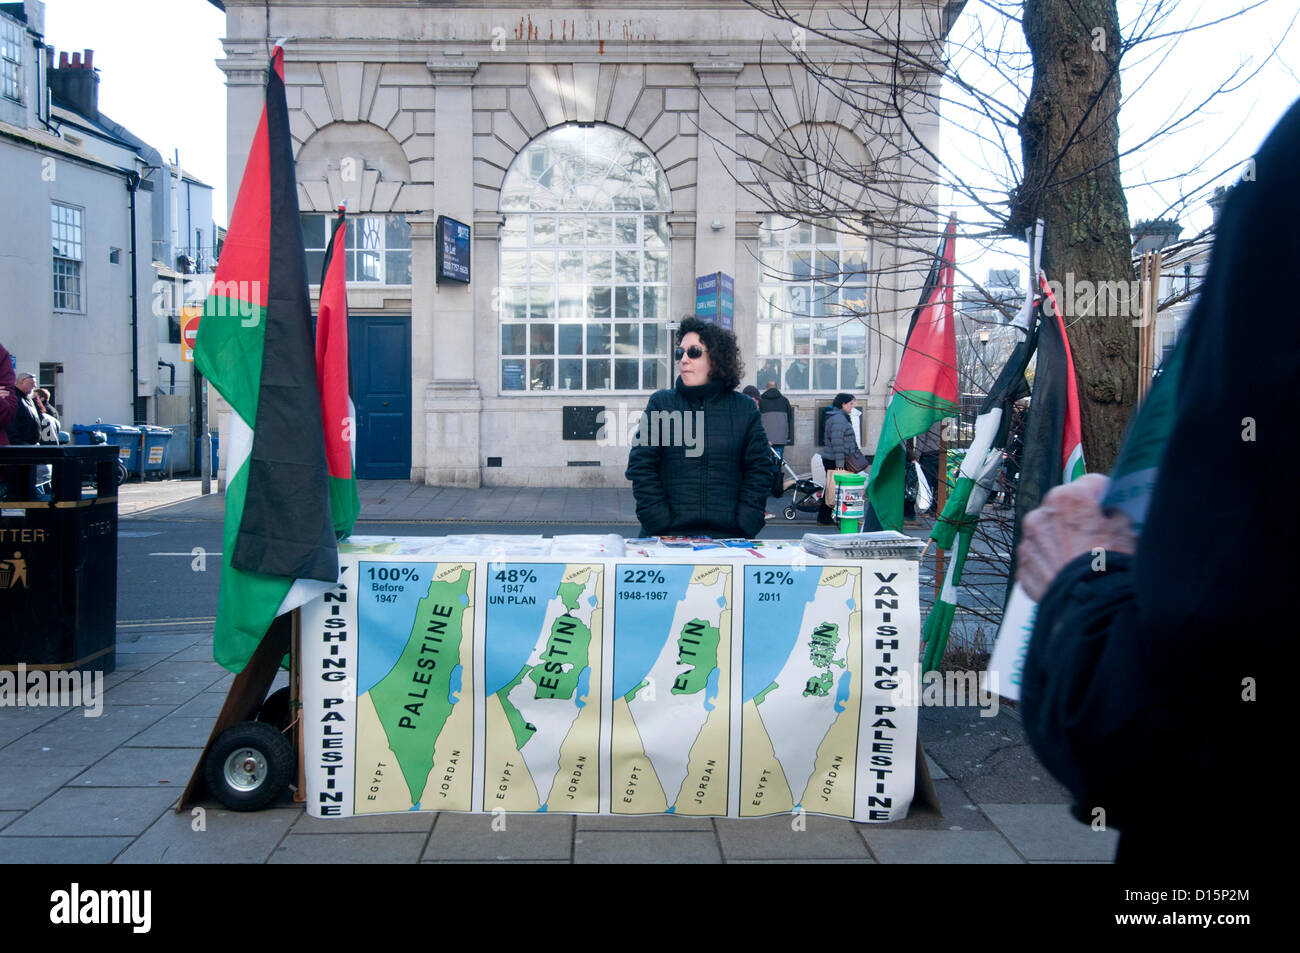 Brighton, UK. 8th Dec, 2012. Members of the Palestine Solidarity Campaign demonstrating outside the world's - Stock Image